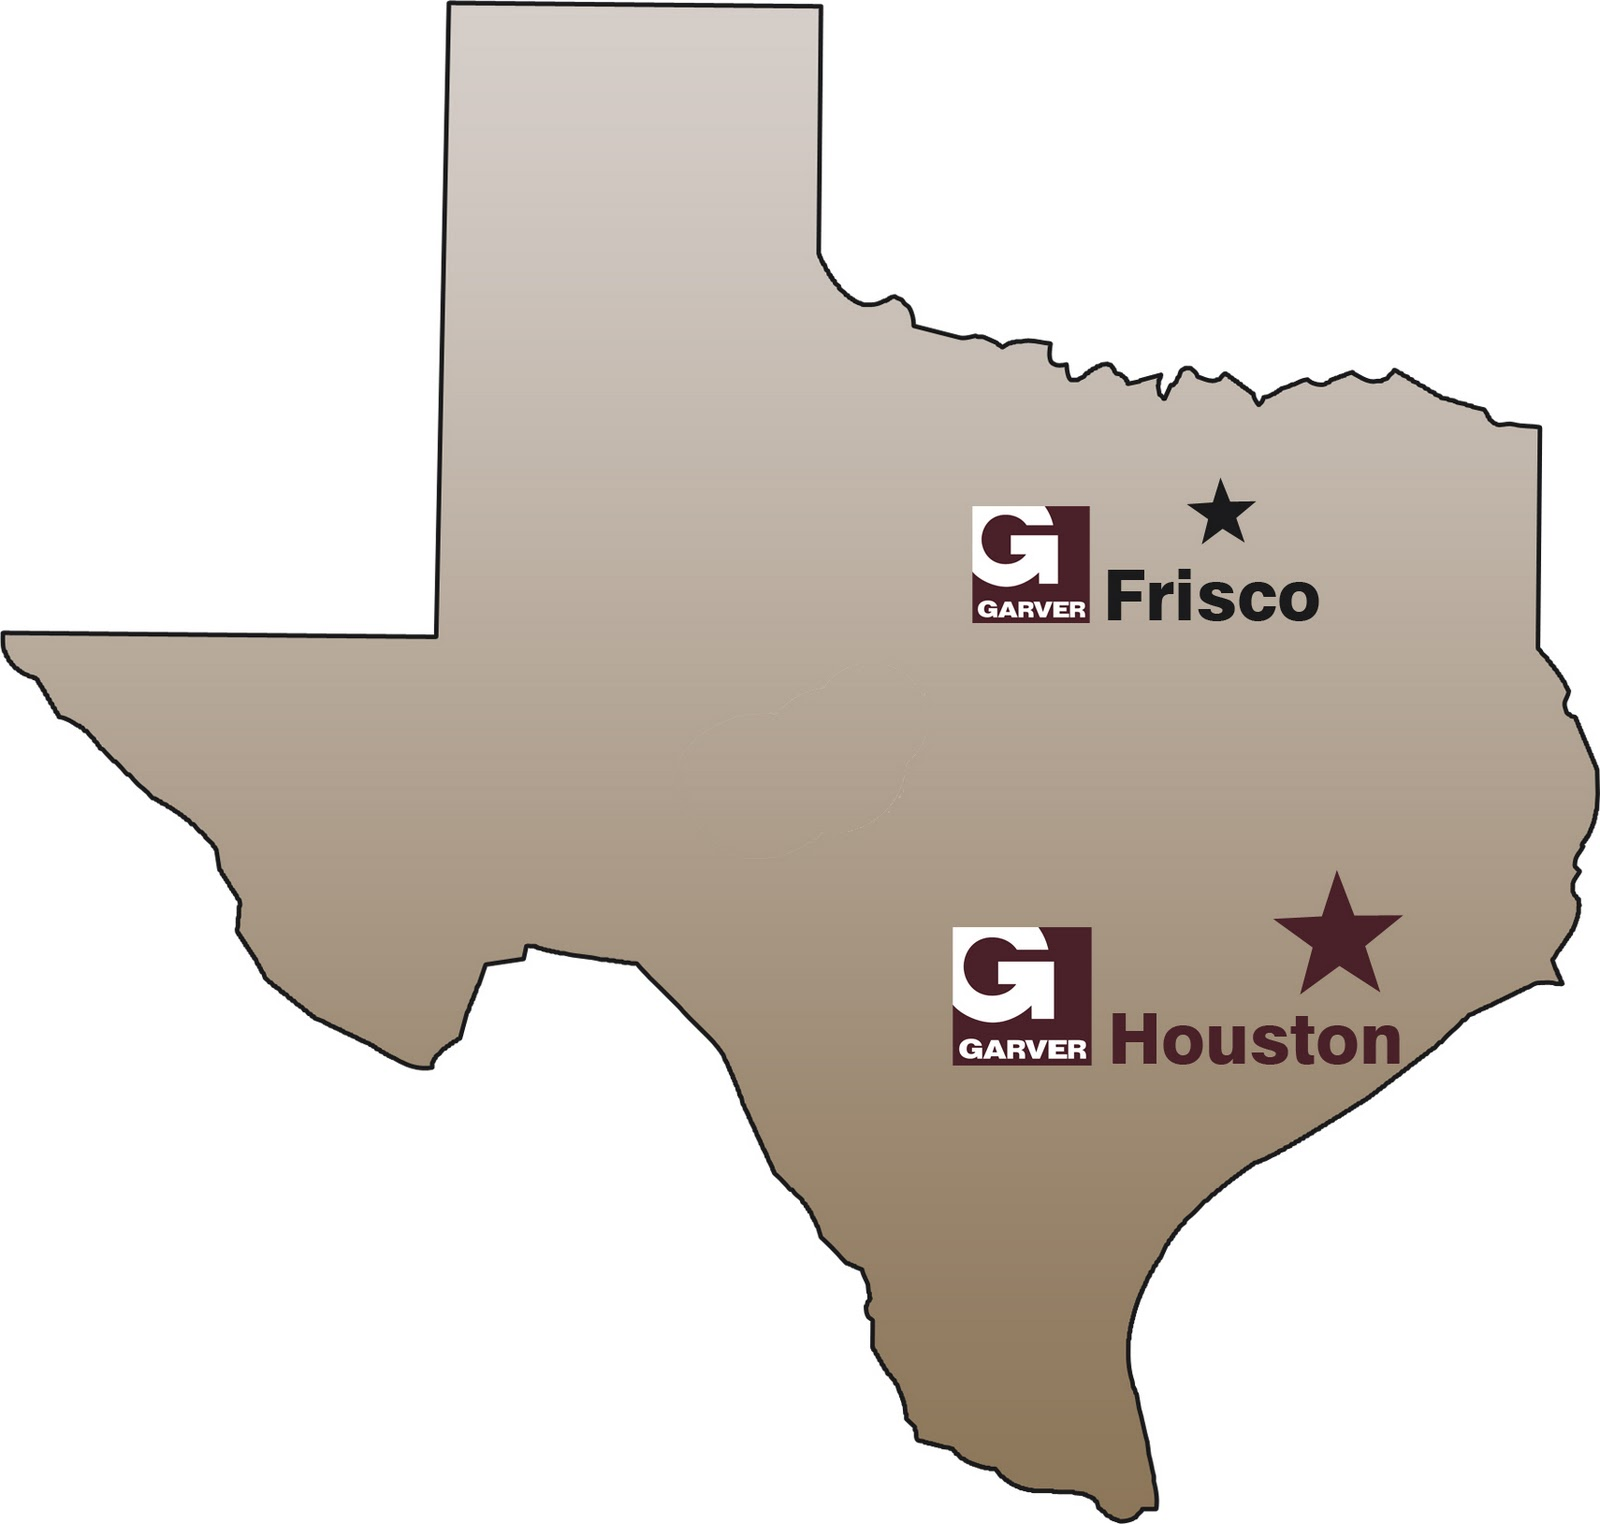 Garver is expanding its services in Texas by opening a new office in ...